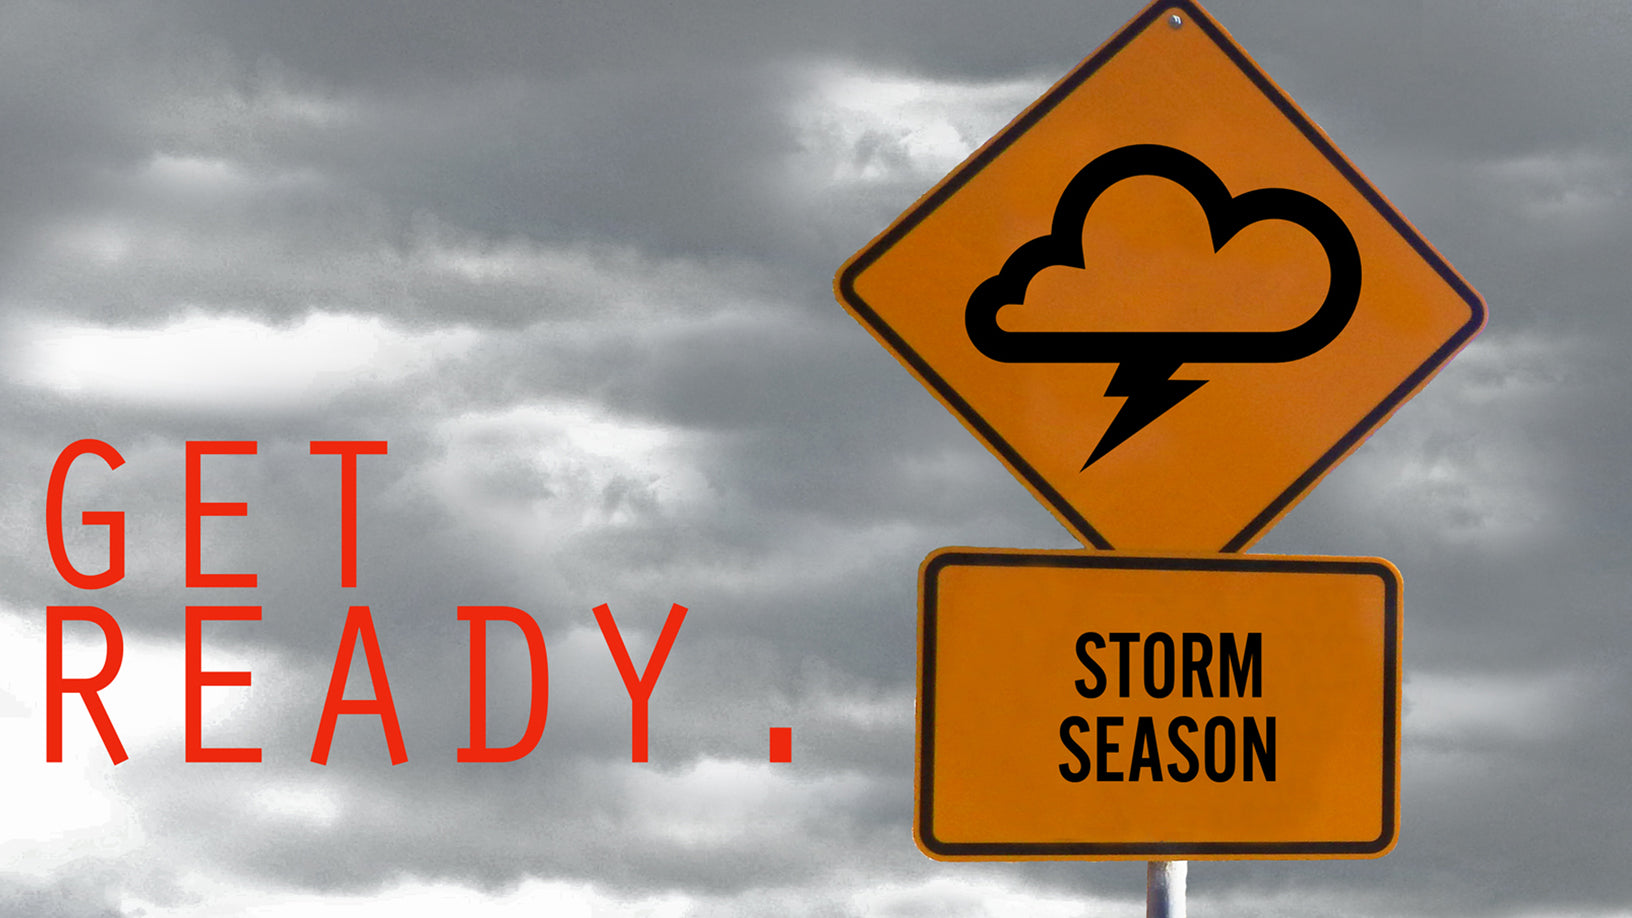 'GET READY' THIS STORM SEASON